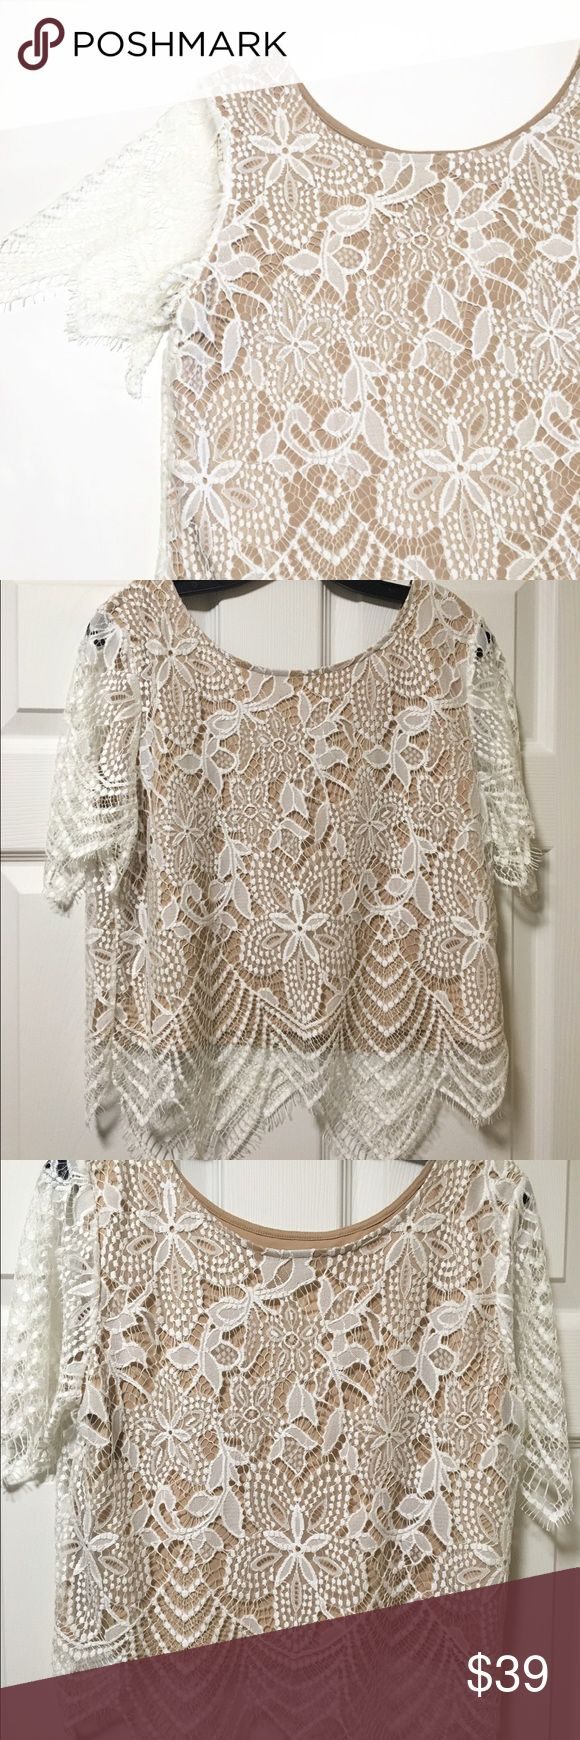 NWOT Express White Lace Tee Beautiful Express White Lace Tee. In oerfect preworn condition with nude underlay. Express Tops Blouses